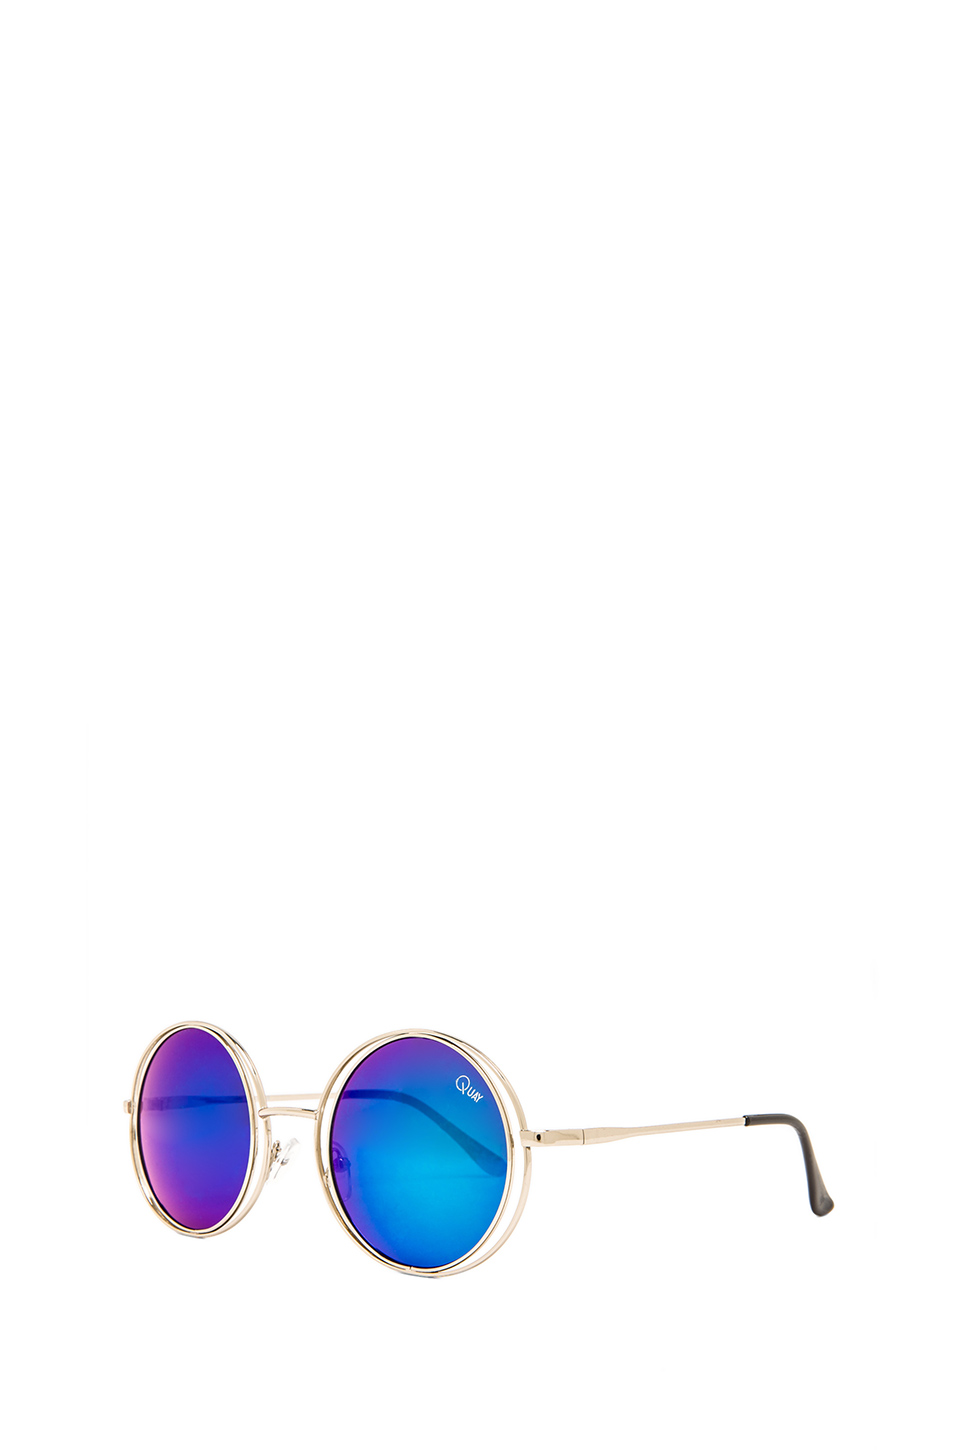 Cherish Sunglasses // Quay